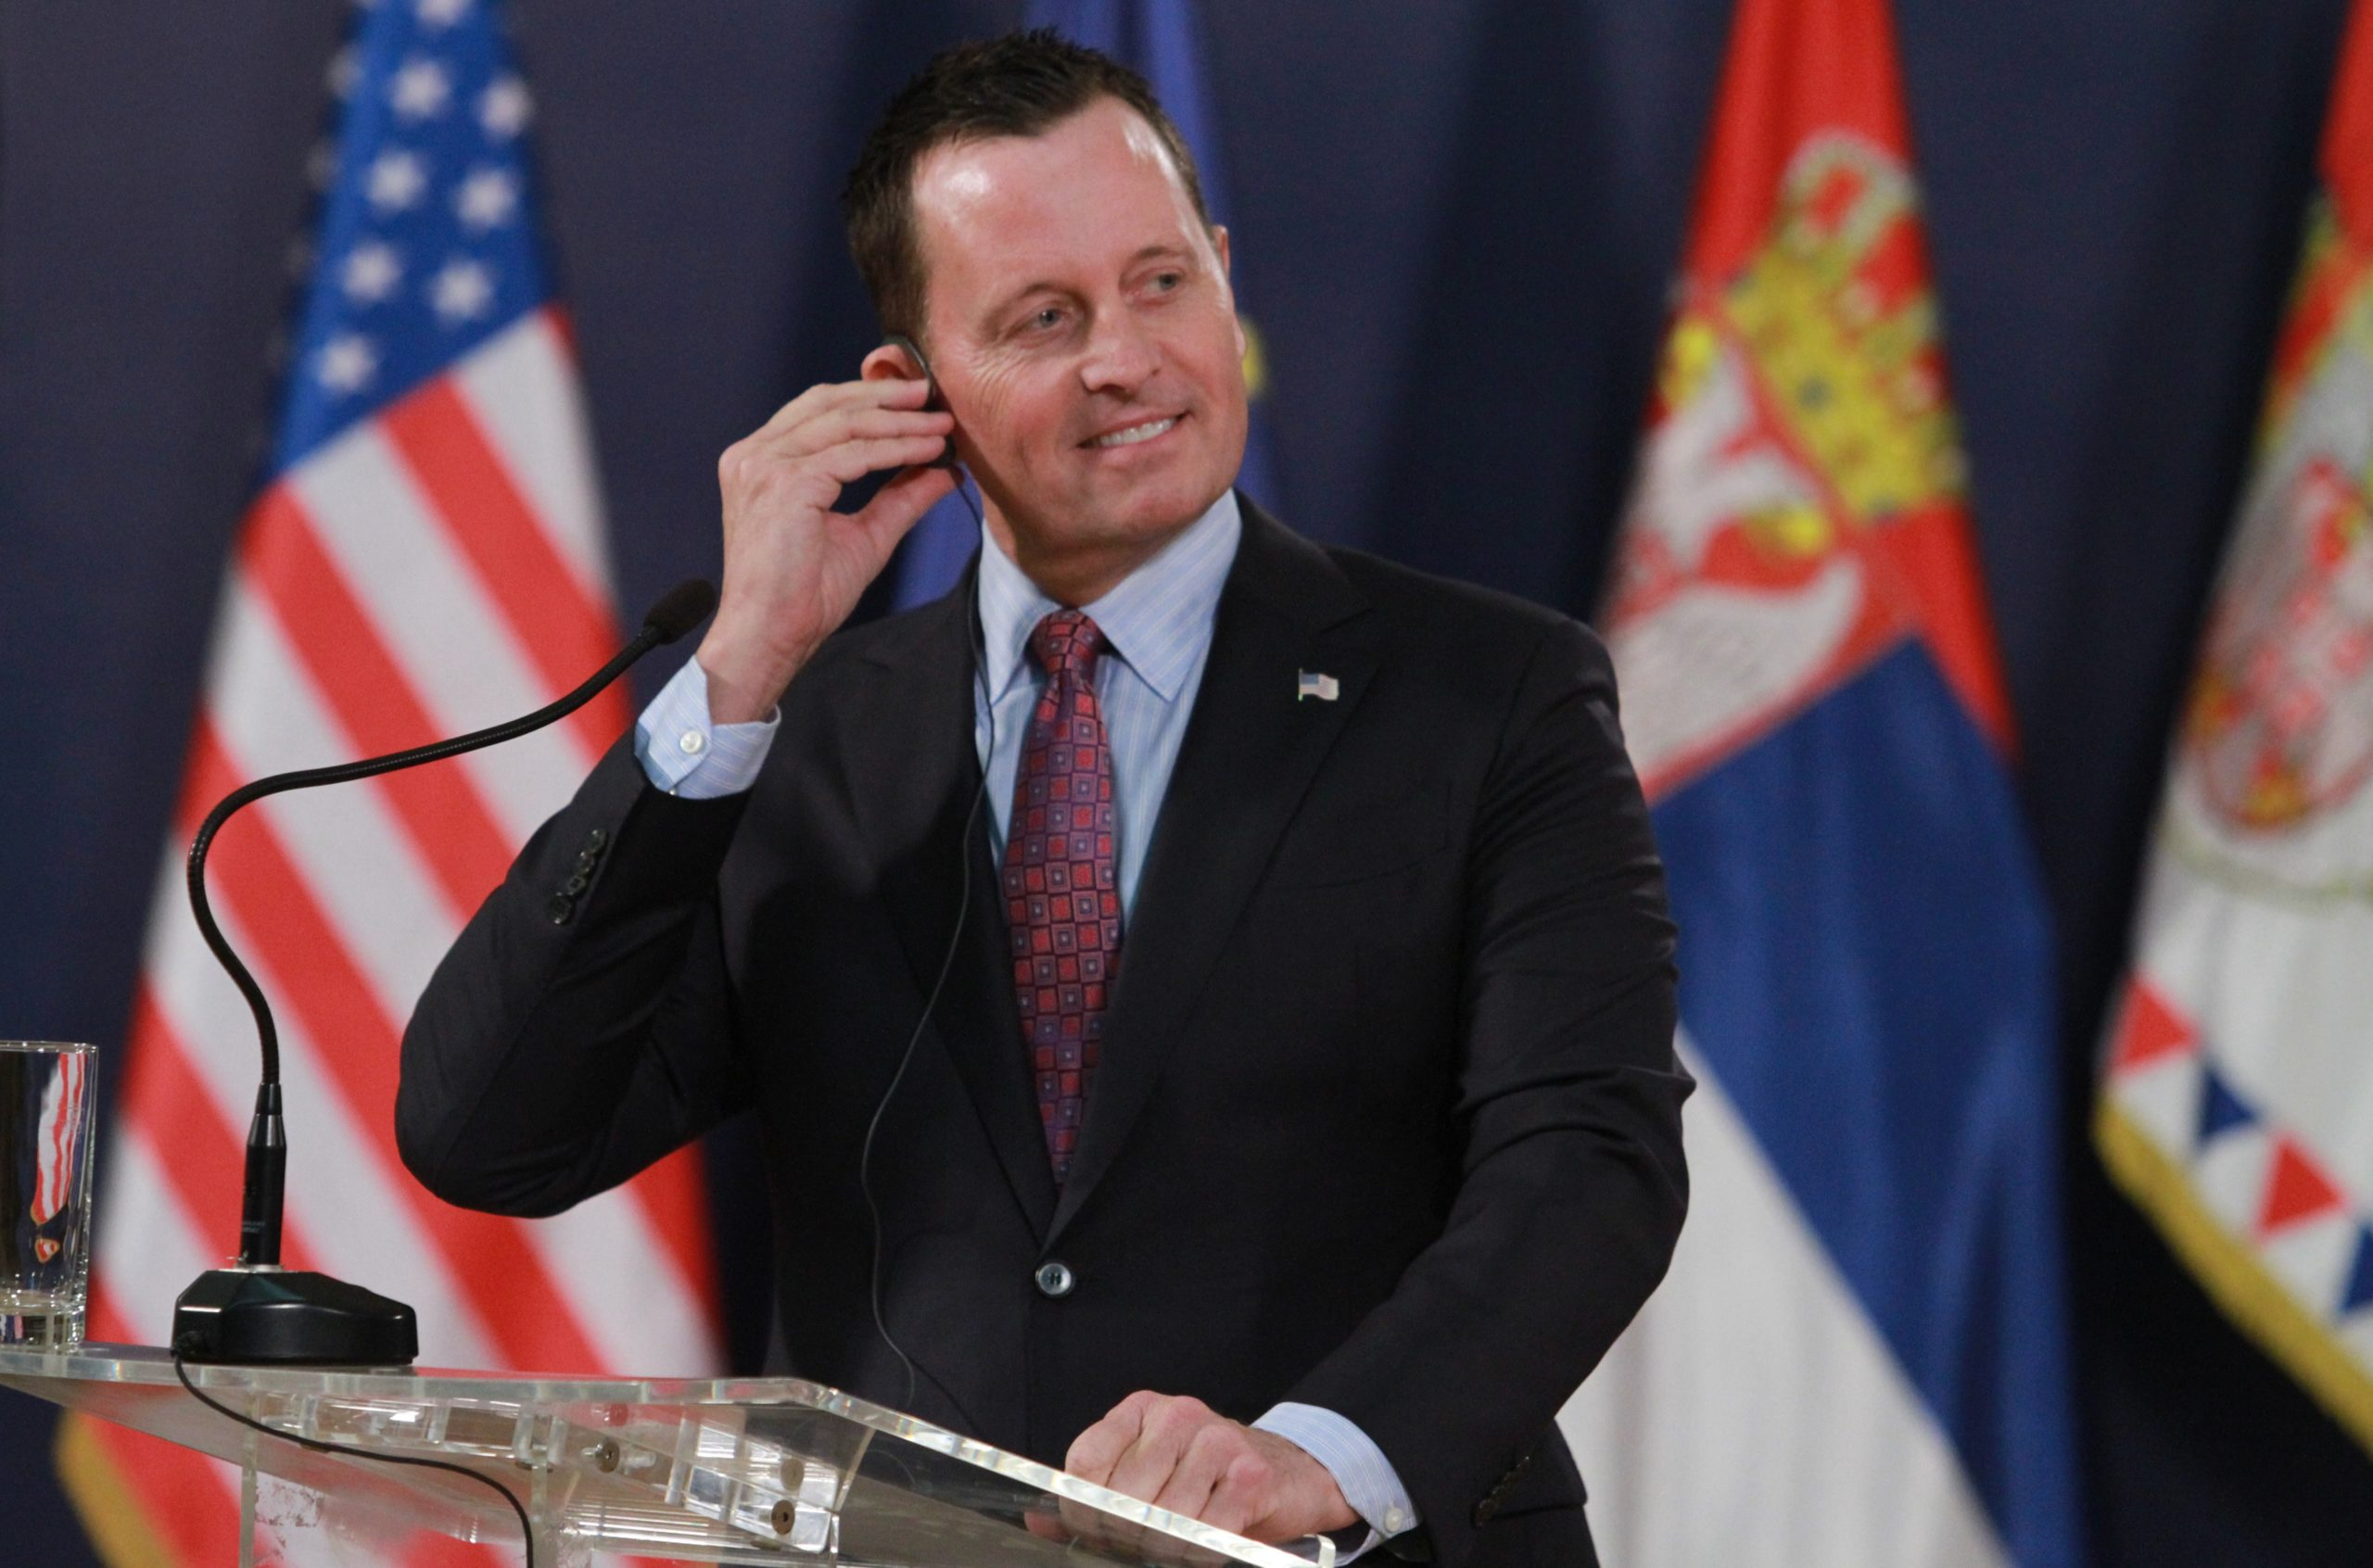 One of Donald Trump's only gay officials, Richard Grenell, is stepping down as ambassador to Germany